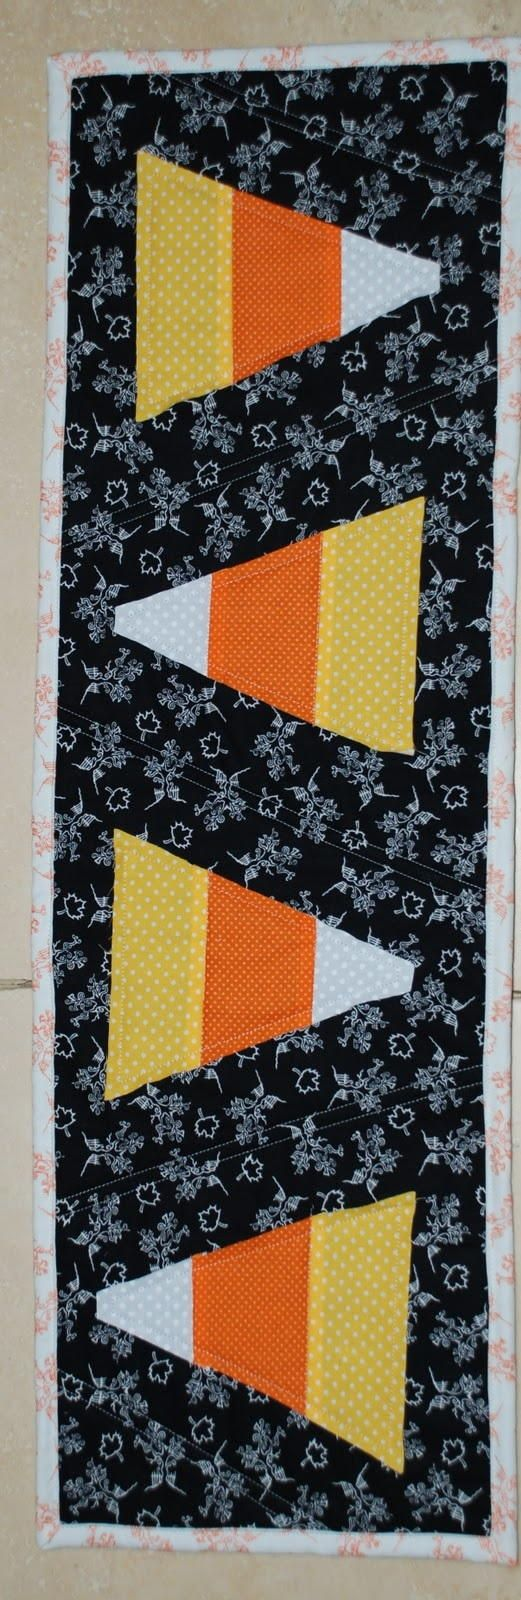 Candy Corn Halloween Runner - Learn how to applique has never been more festive, fun, or easy peasy than with these sweet treat free applique designs. Create this table runner pattern to lay out for trick or treaters, use the applique pattern on other projects, or make this project for a friend.